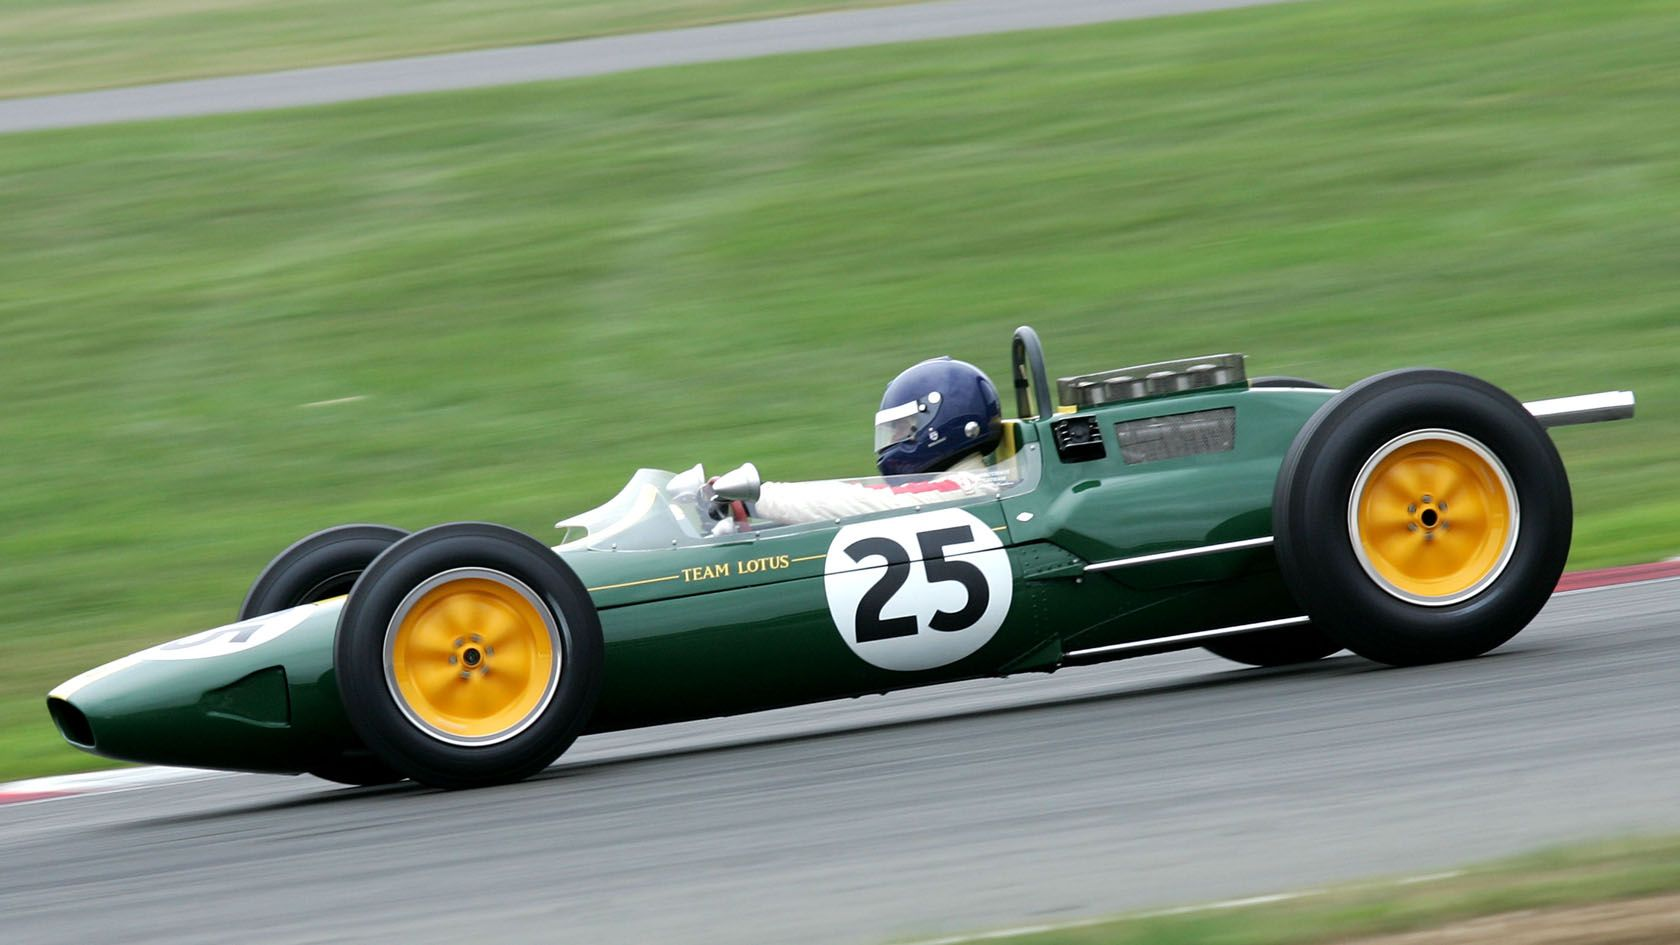 10 Formula 1 Cars That Were Absolute Game Changers | HotCars